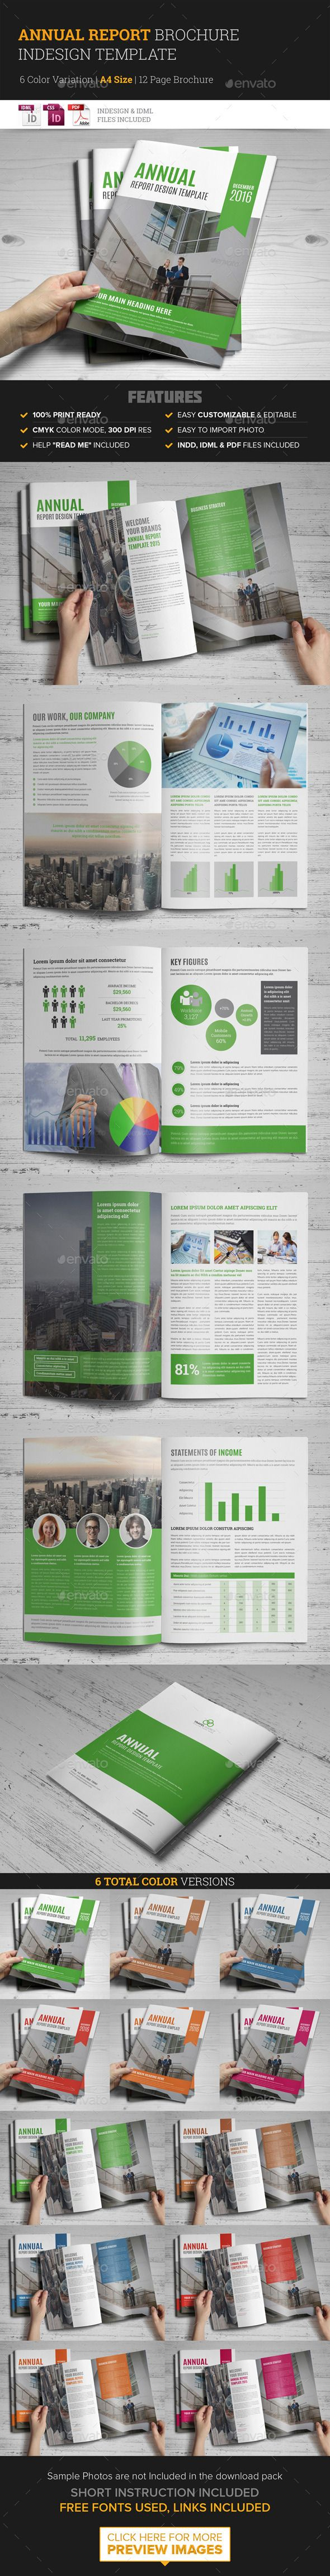 Annual Report Brochure Indesign Template | Indesign templates ...